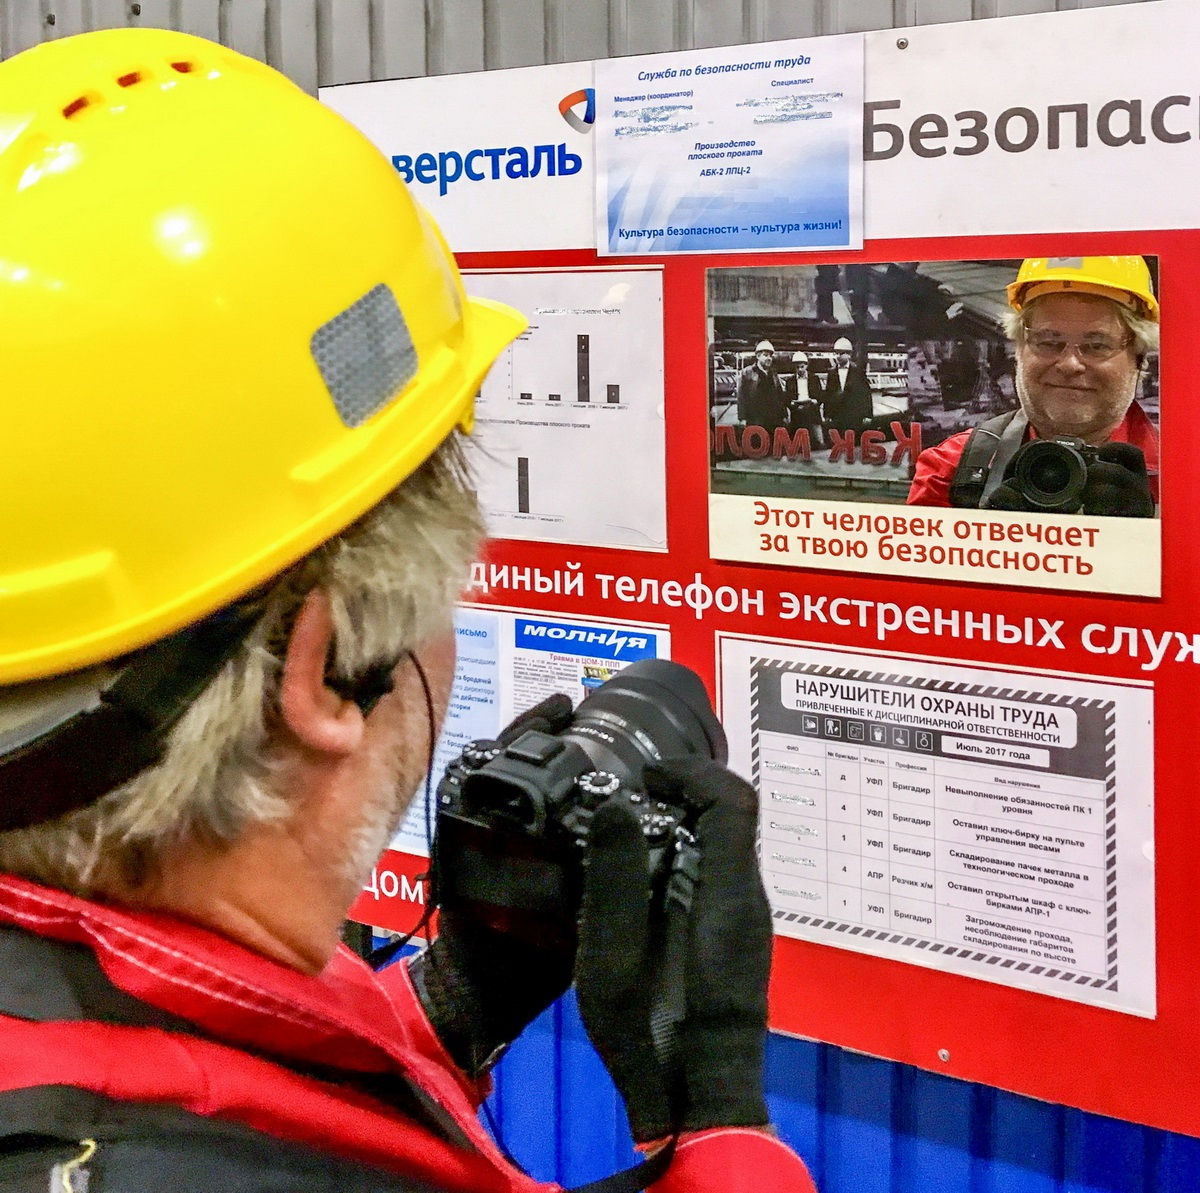 severstal-heavy-metal-46